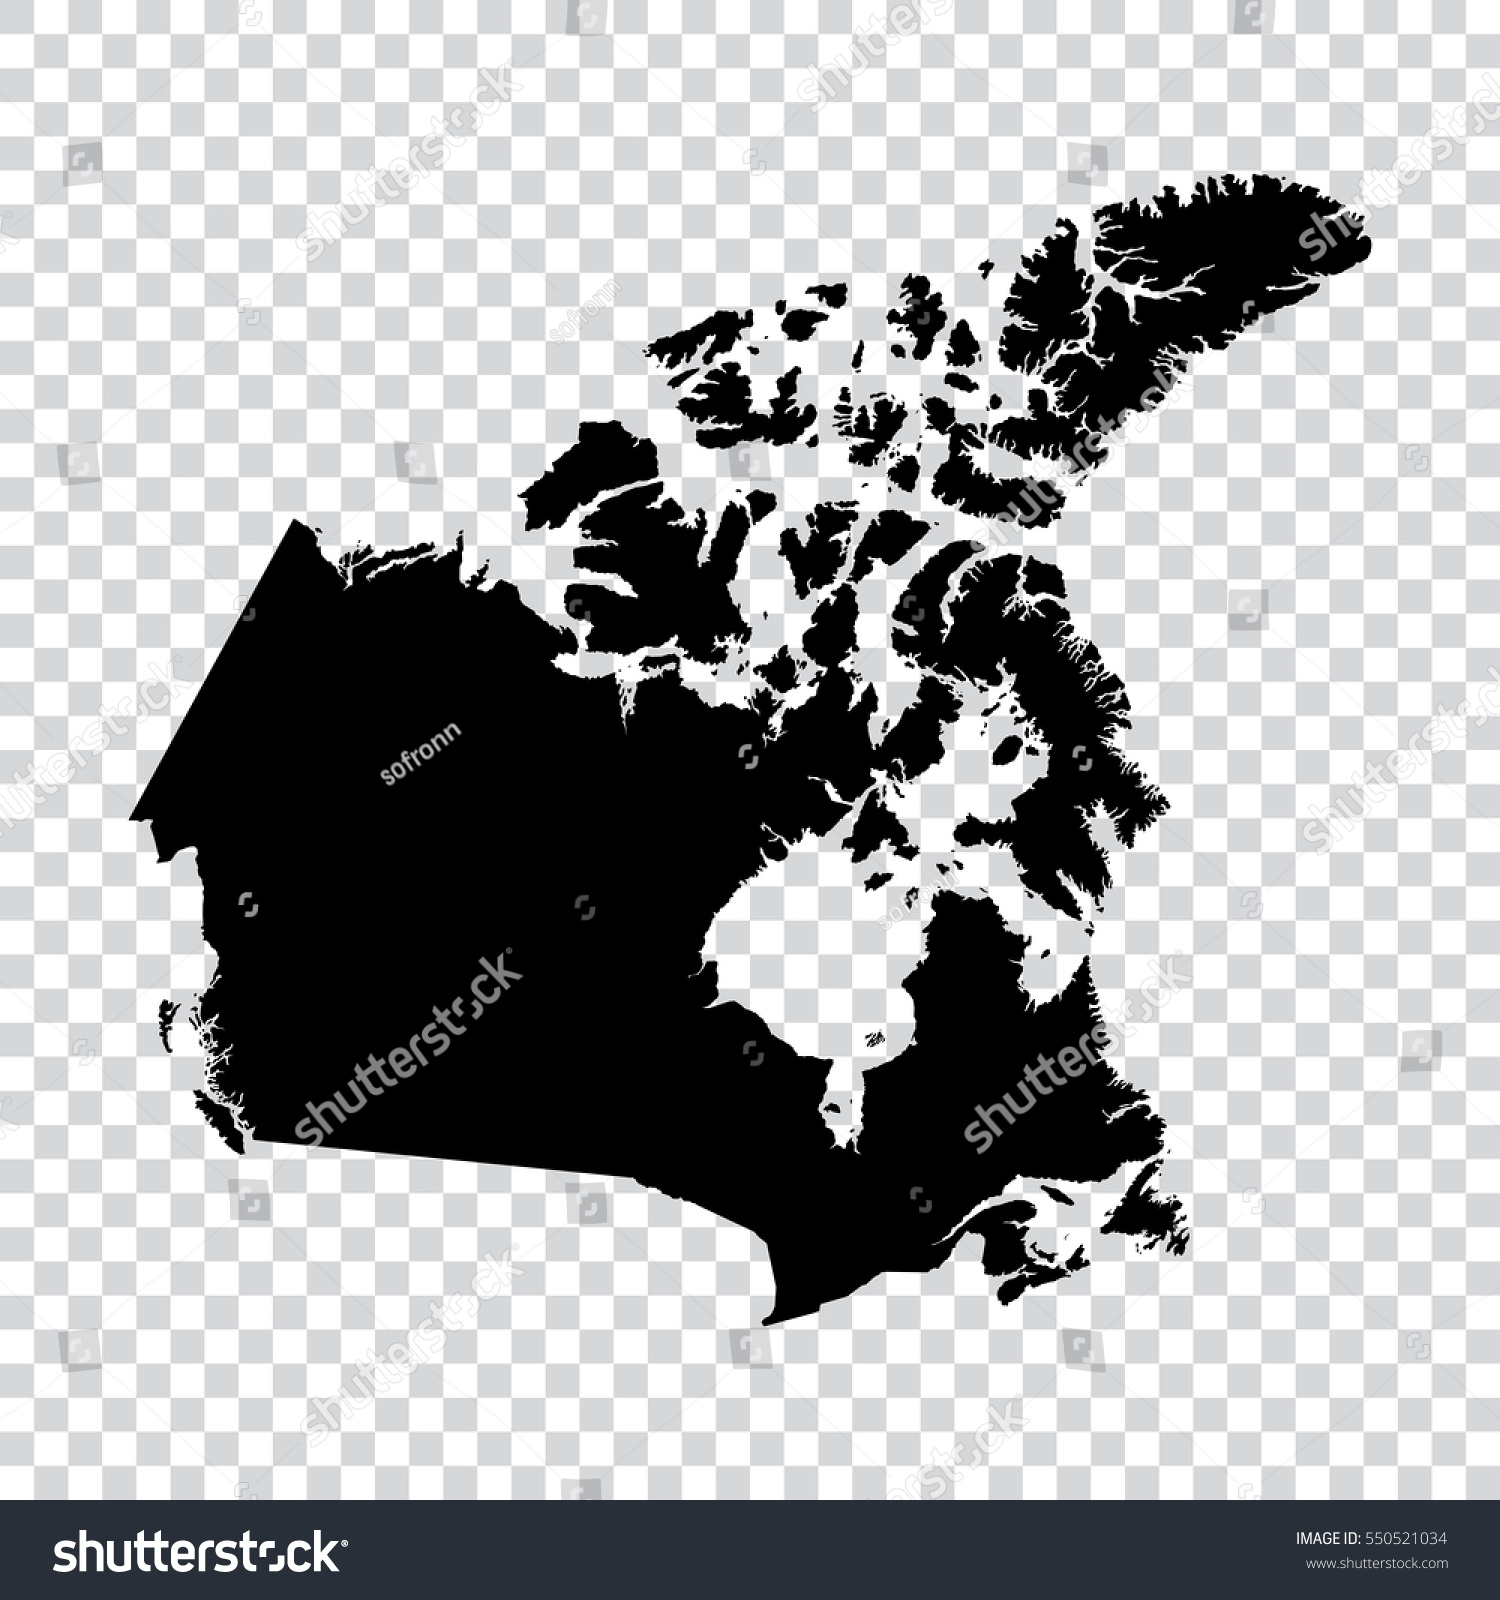 Map Of Canada Eps.Transparent High Detailed Black Map Canada Stock Vector Royalty